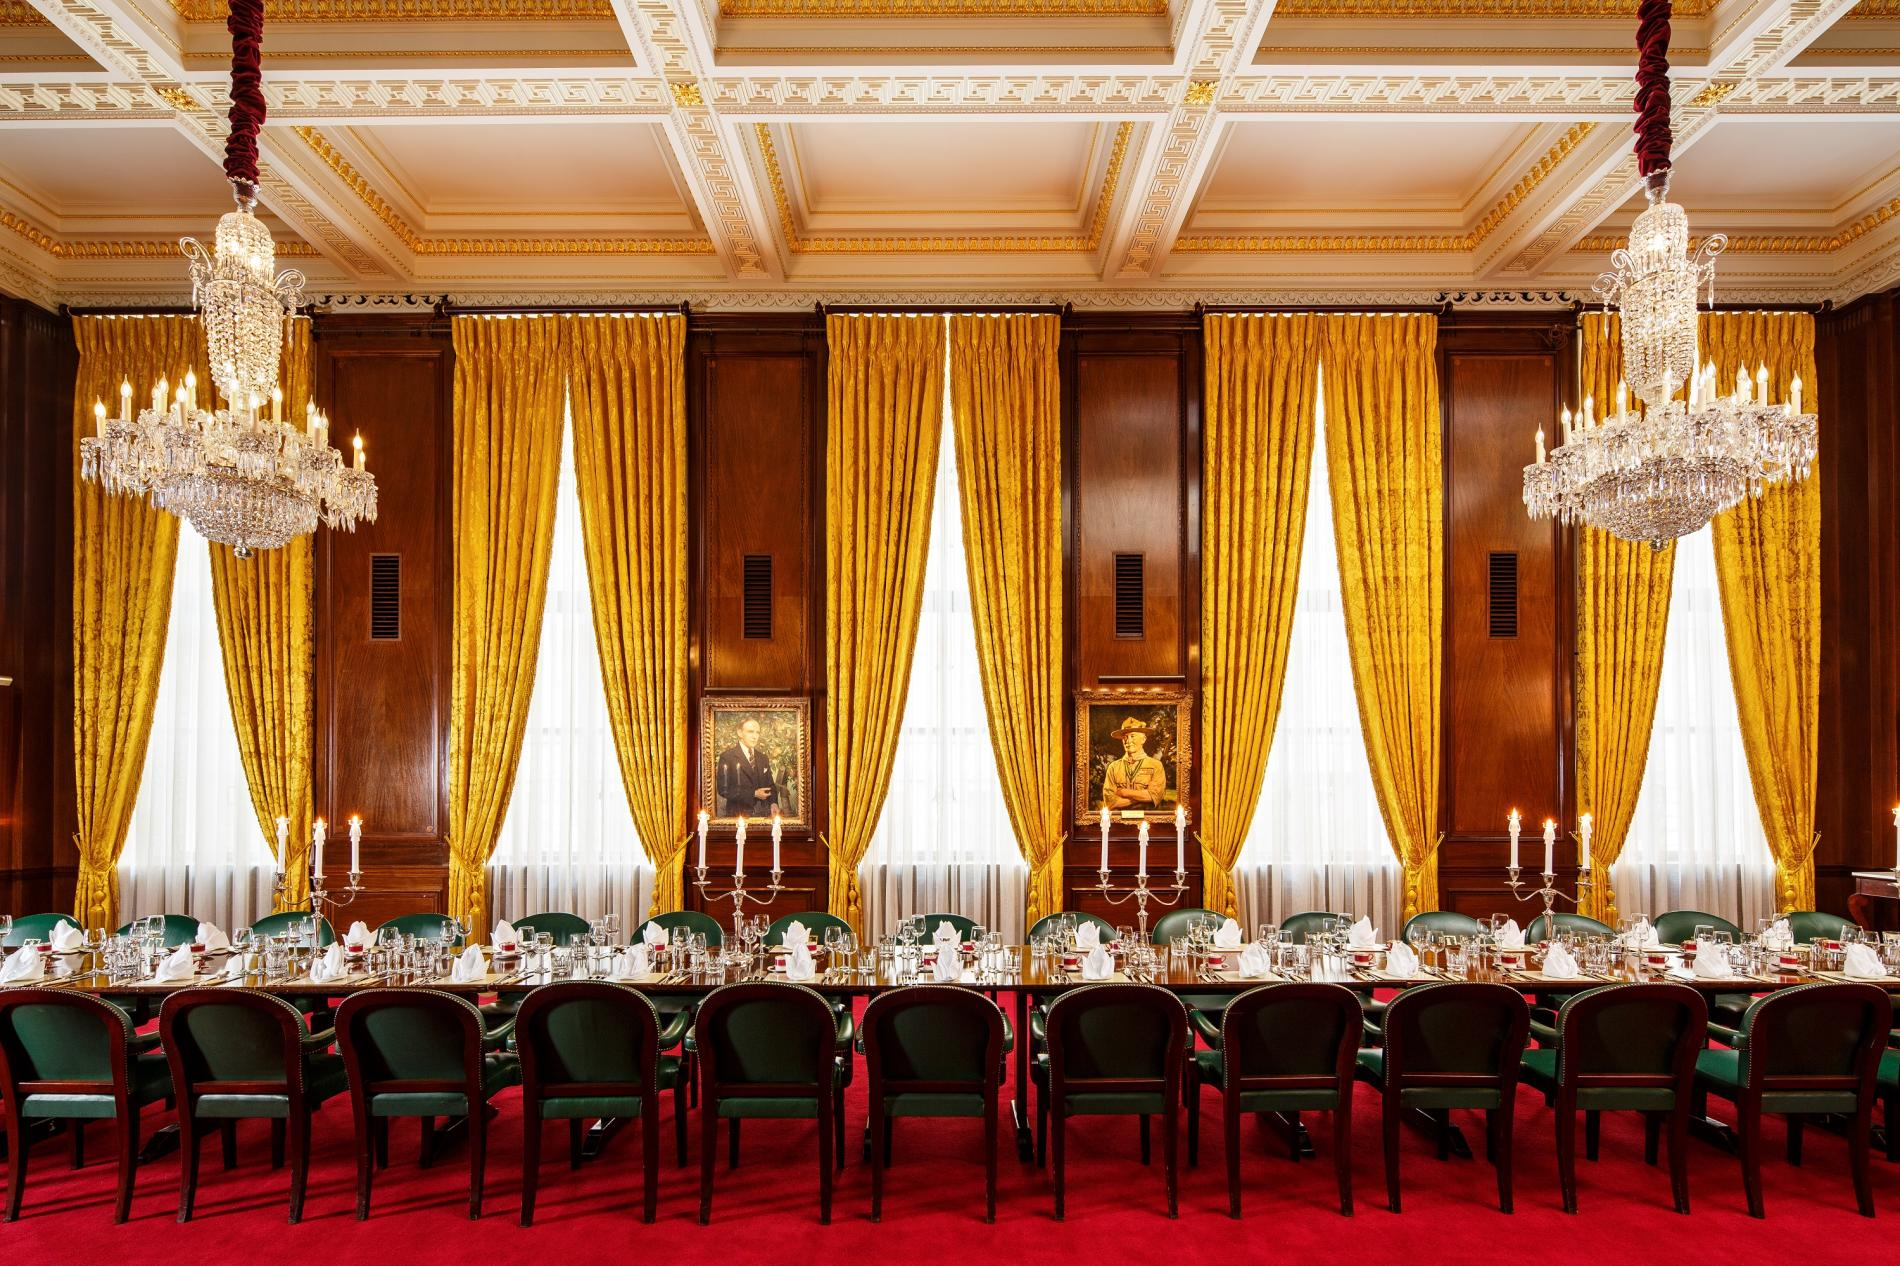 Court Dining Room image